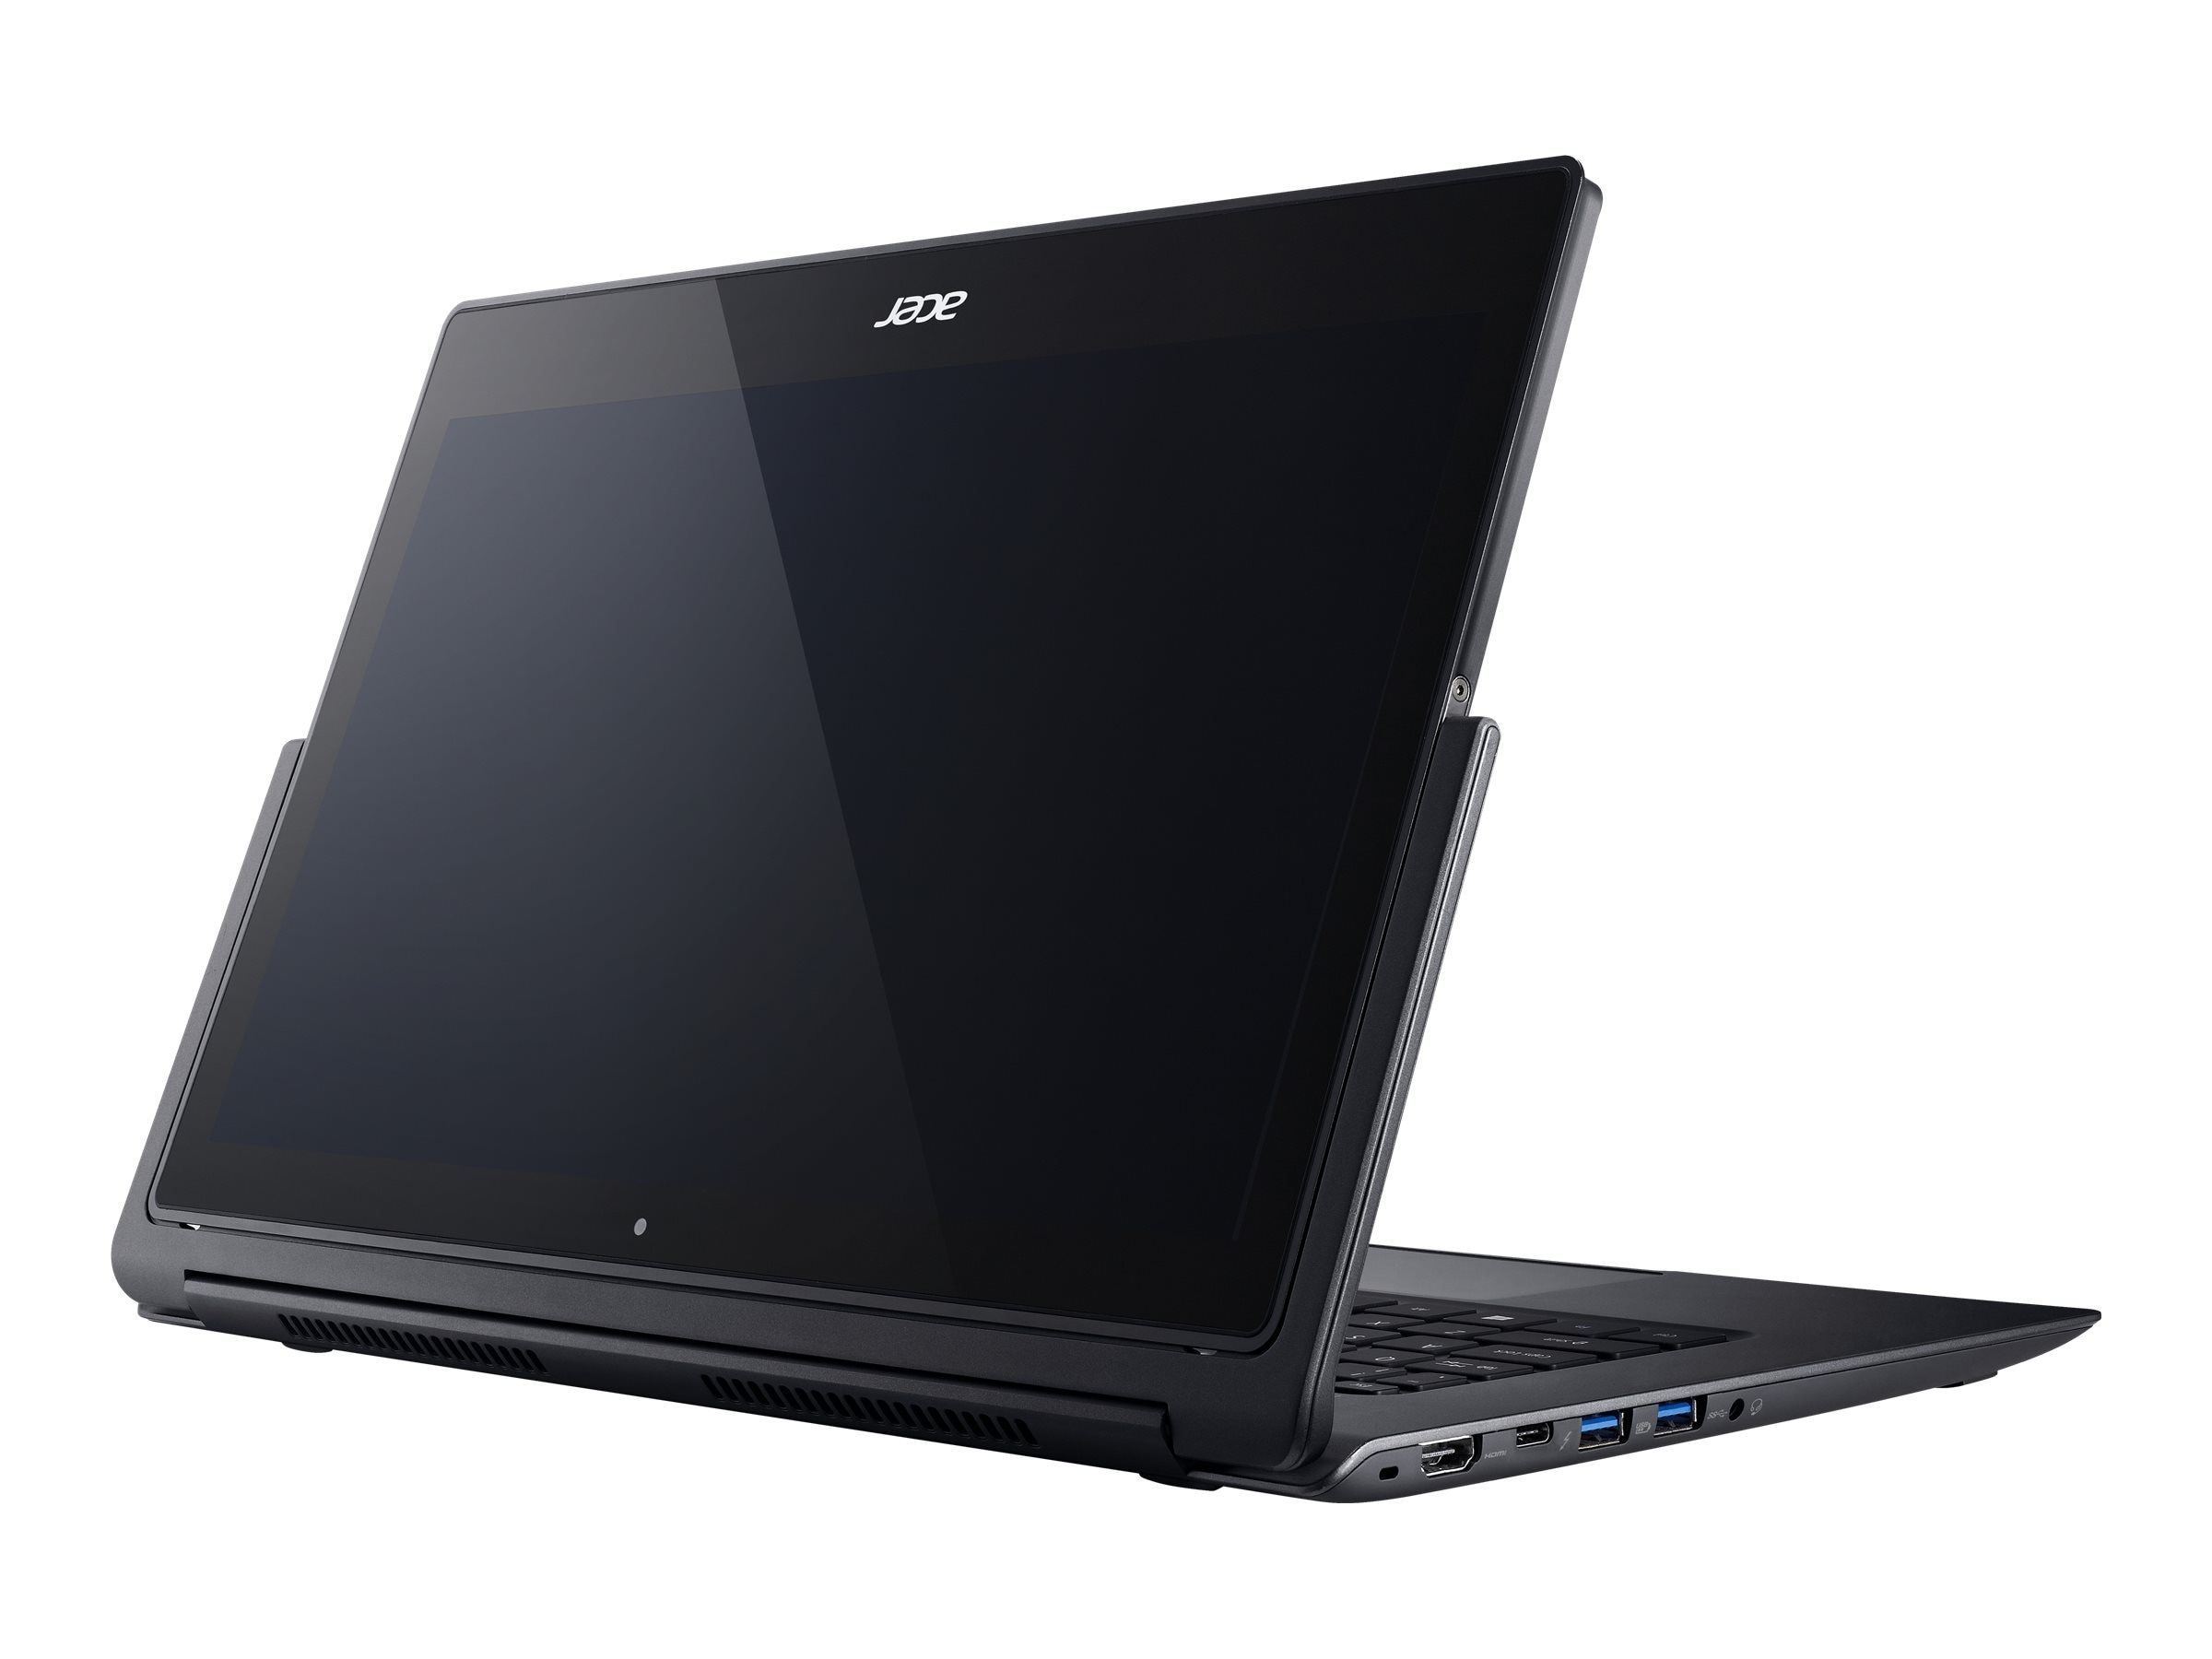 Acer Aspire R7-372T-758Q 2.5GHz processor Windows 10 Pro 64-bit Edition, NX.G8SAA.005, 31017526, Tablets